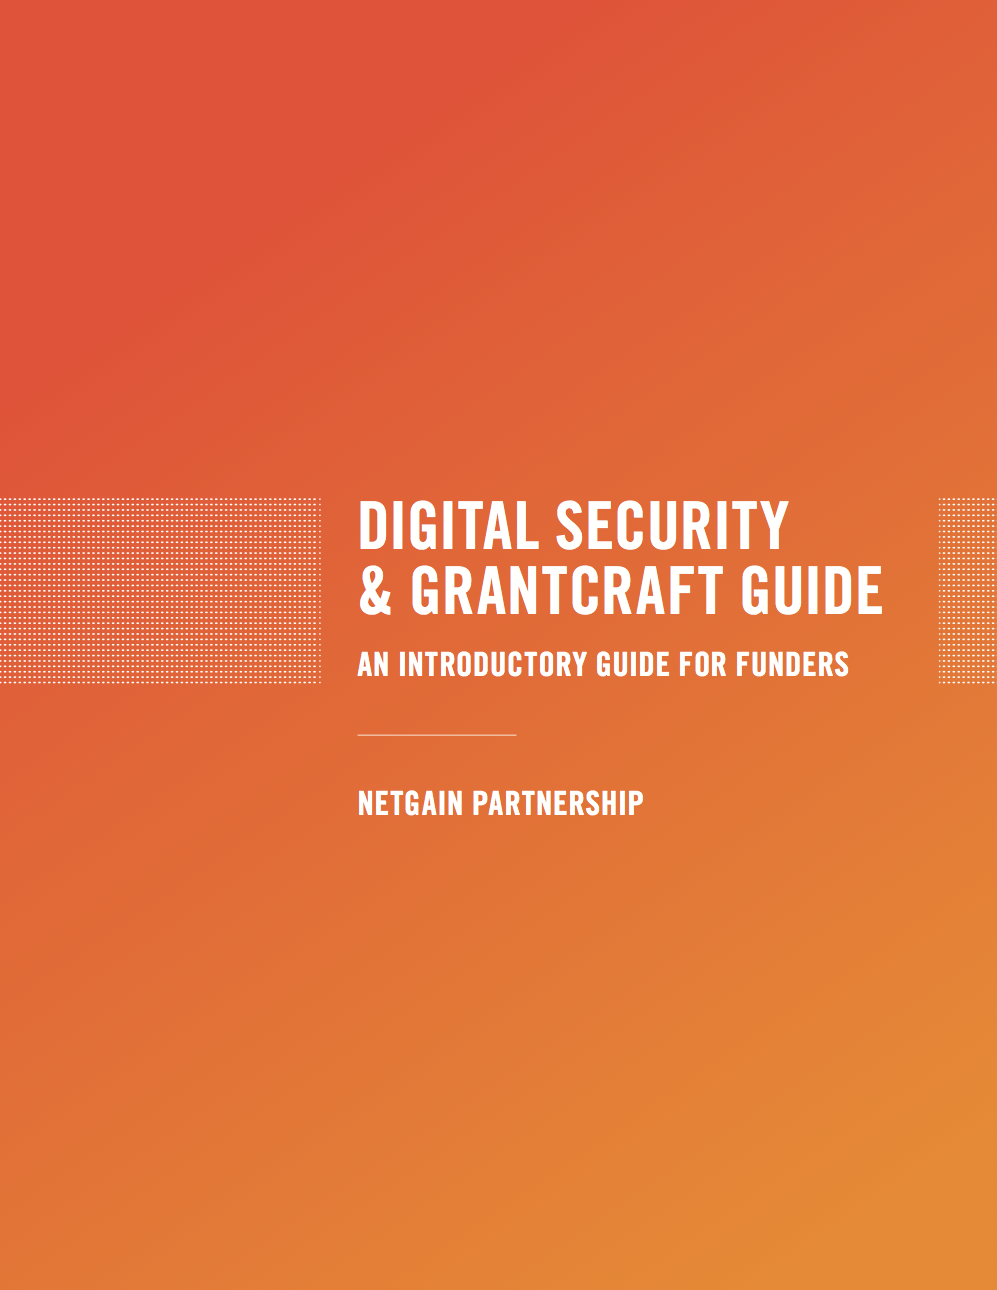 Digital Security & Grantcraft Guide